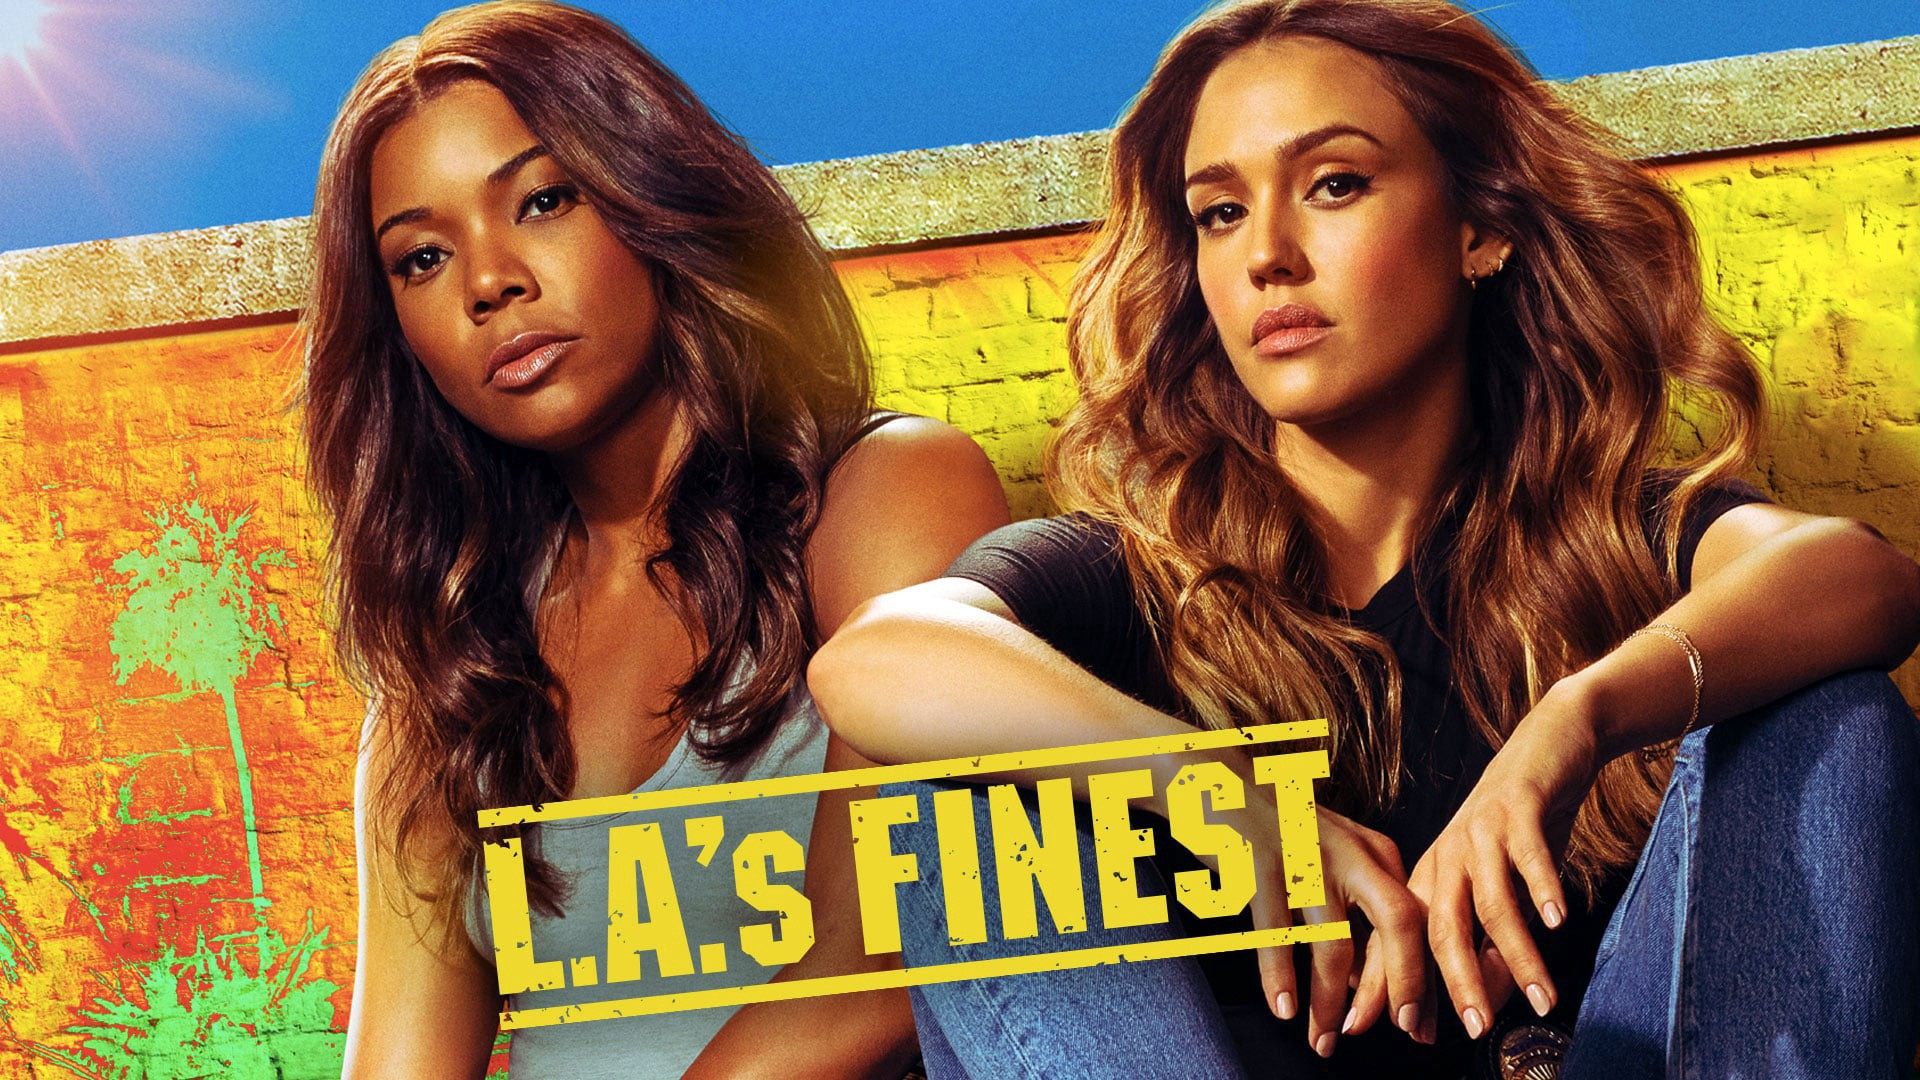 Watch [Online] — L.A.'s Finest Season 2 Episode 1 : Spectrum's ...